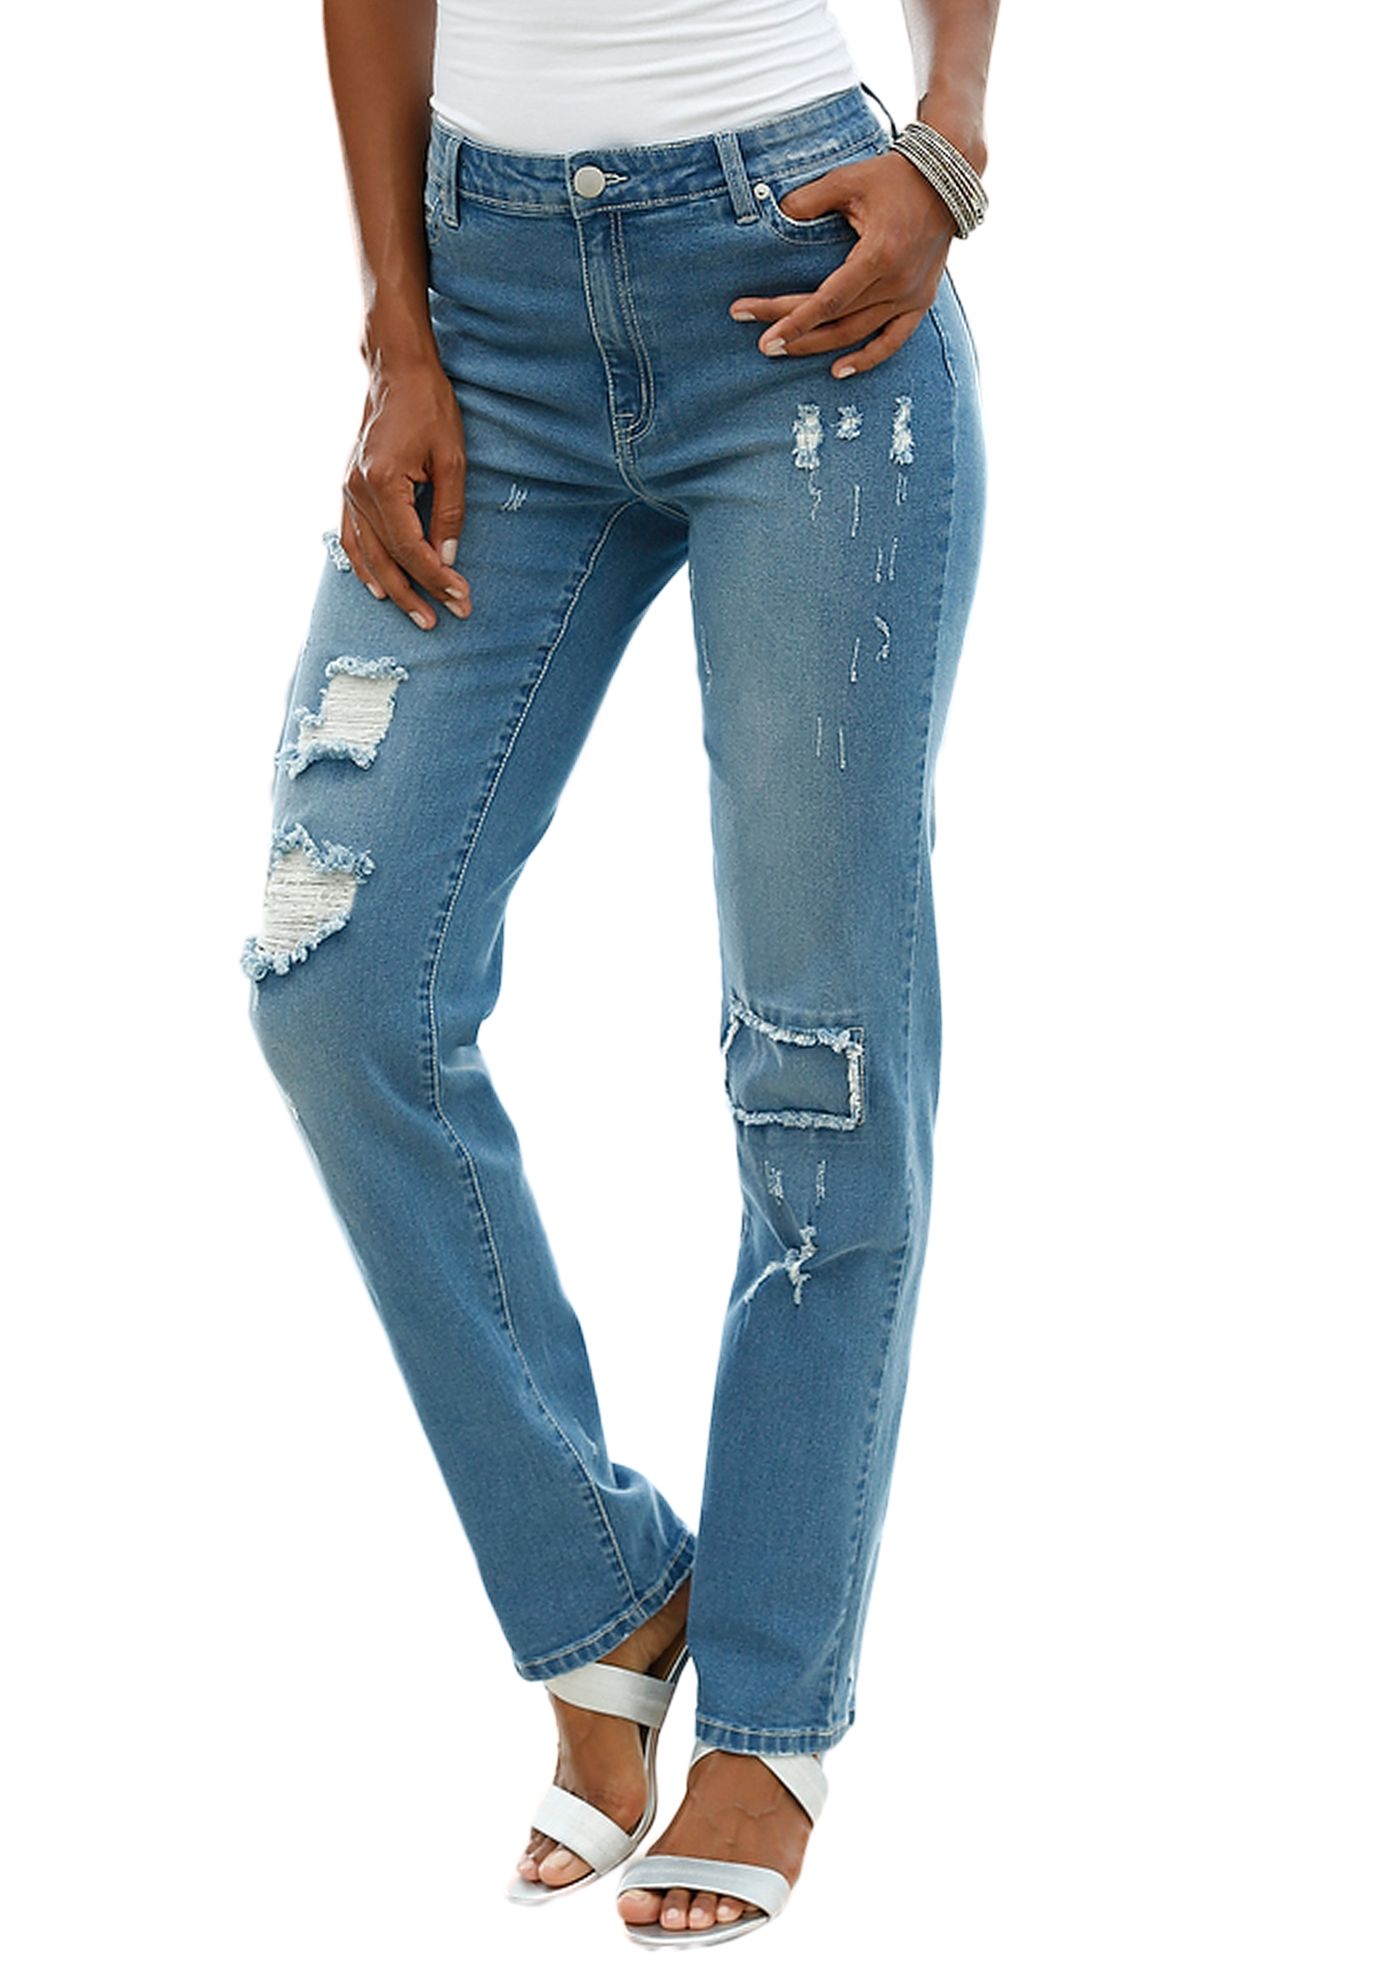 Since , Wrangler's jeans for men have been the American standard for comfort and durability. Browse men's jeans by fit, rise, size, price and more. Skip to main content.